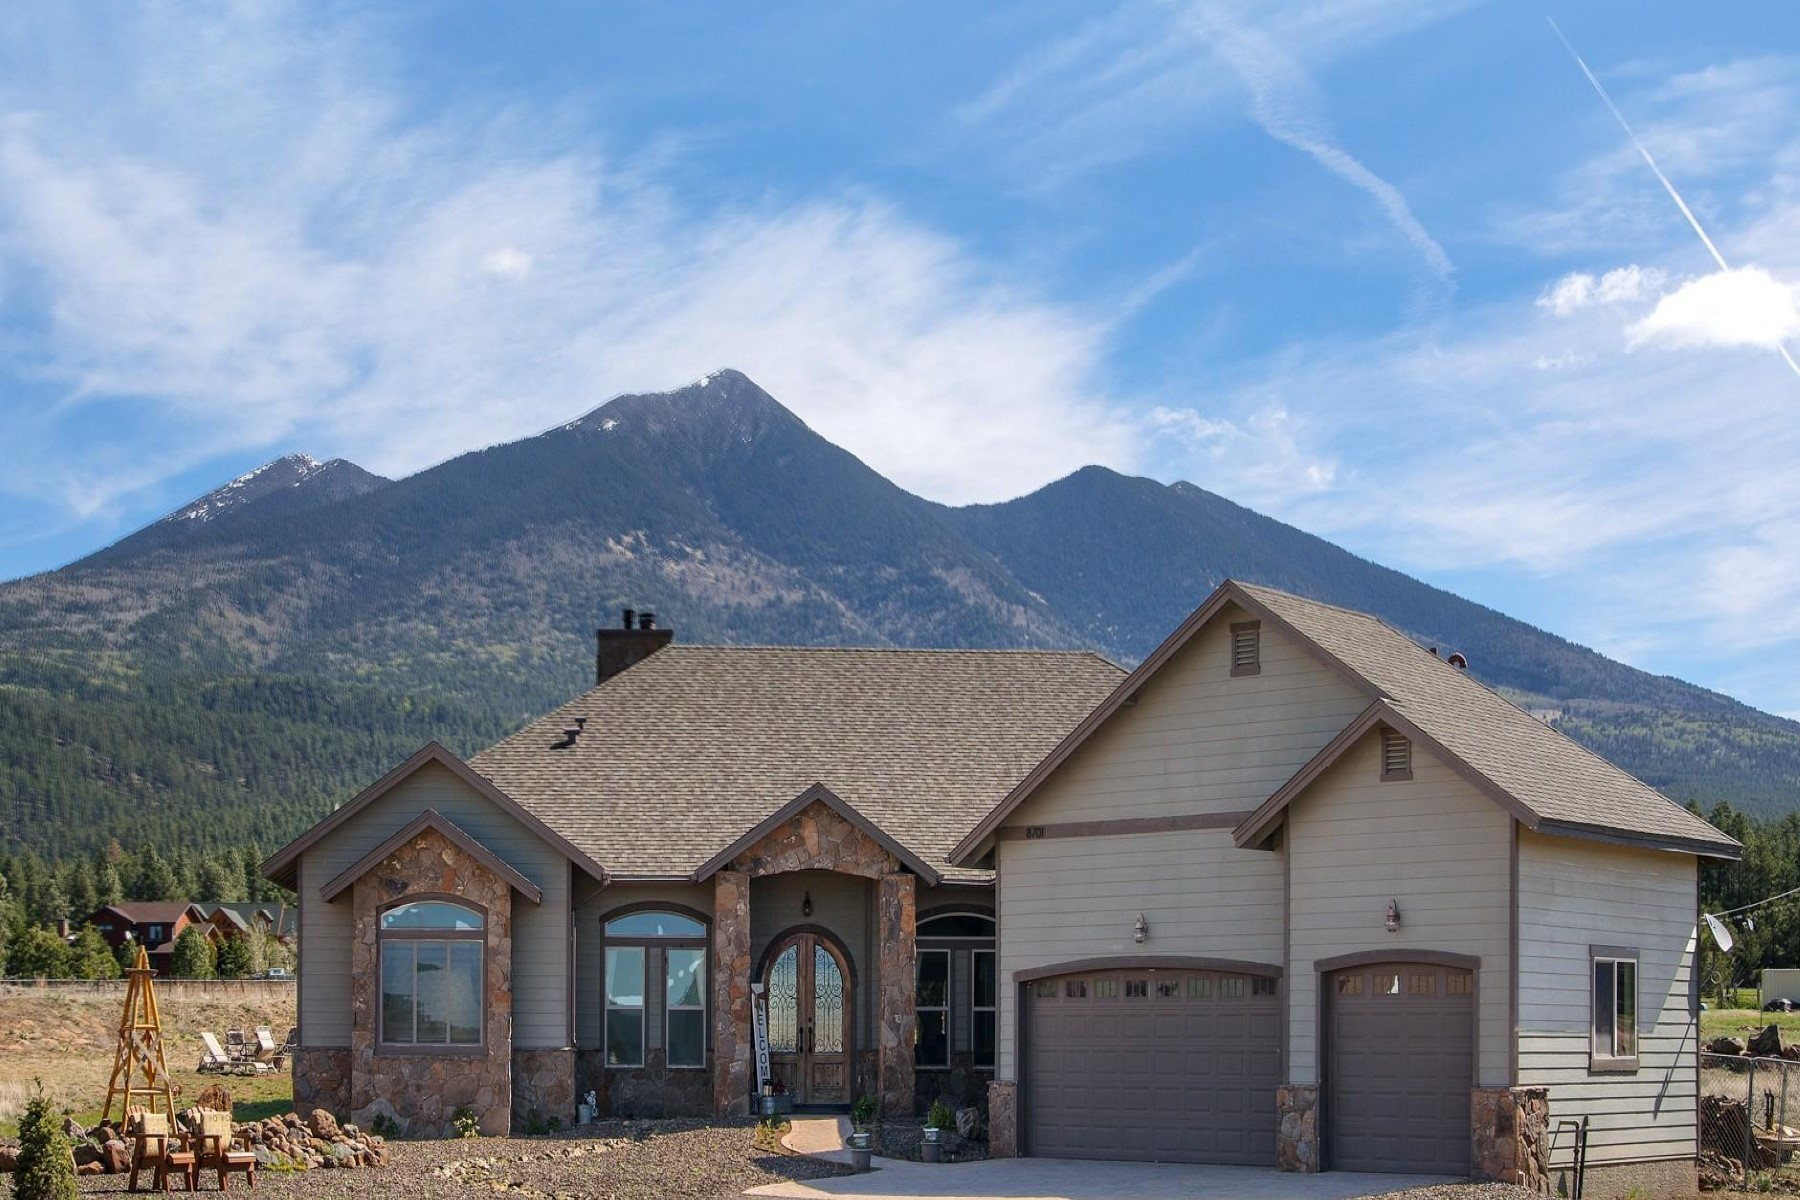 Single Family Home for Sale at Singe level home in Chimney Springs Trails 8701 N Chimney Springs Trl Flagstaff, Arizona, 86001 United States